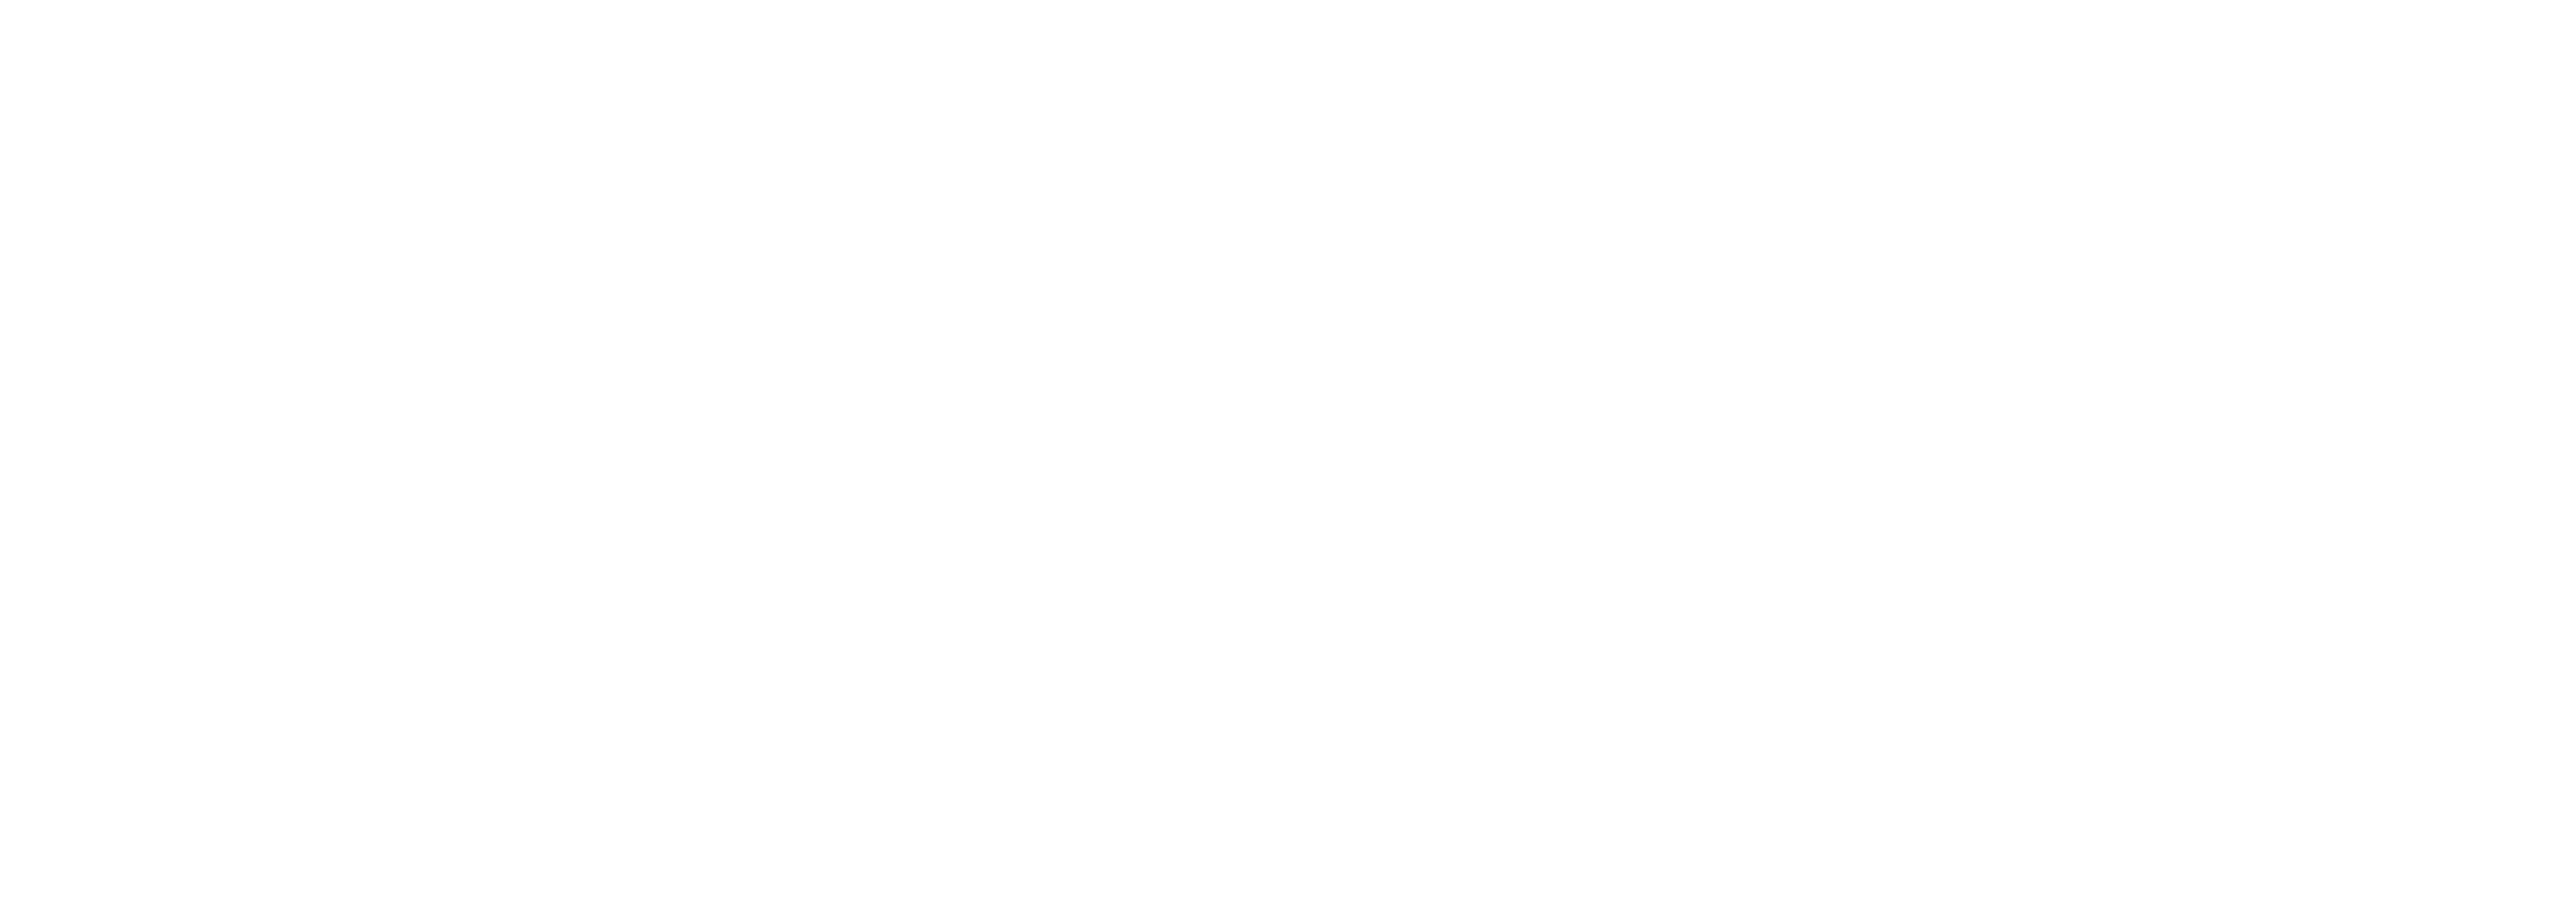 Faces of Relativity logo